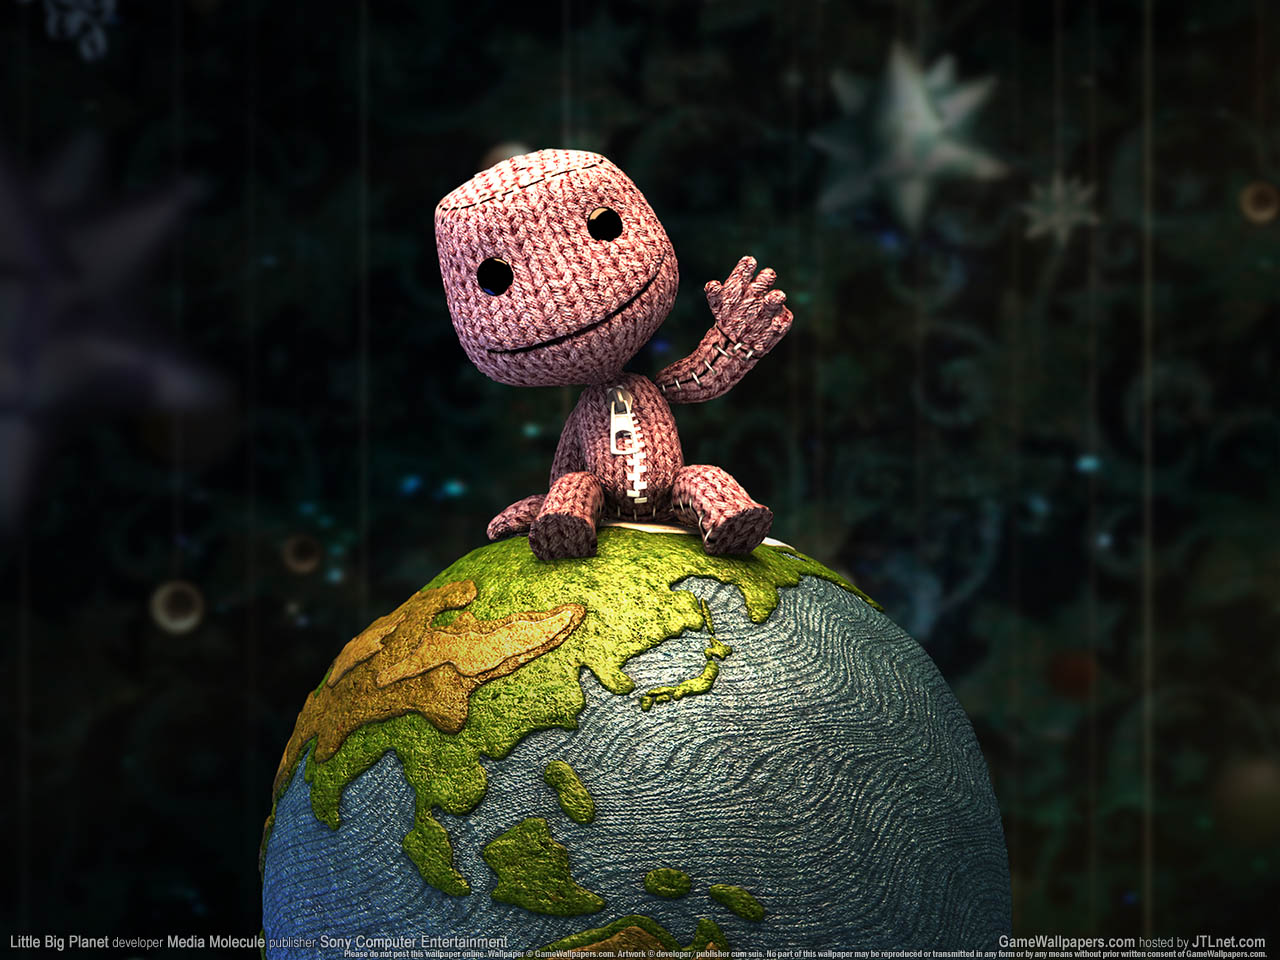 Little Big Planet Wallpapers 1280 x 960 1280x960